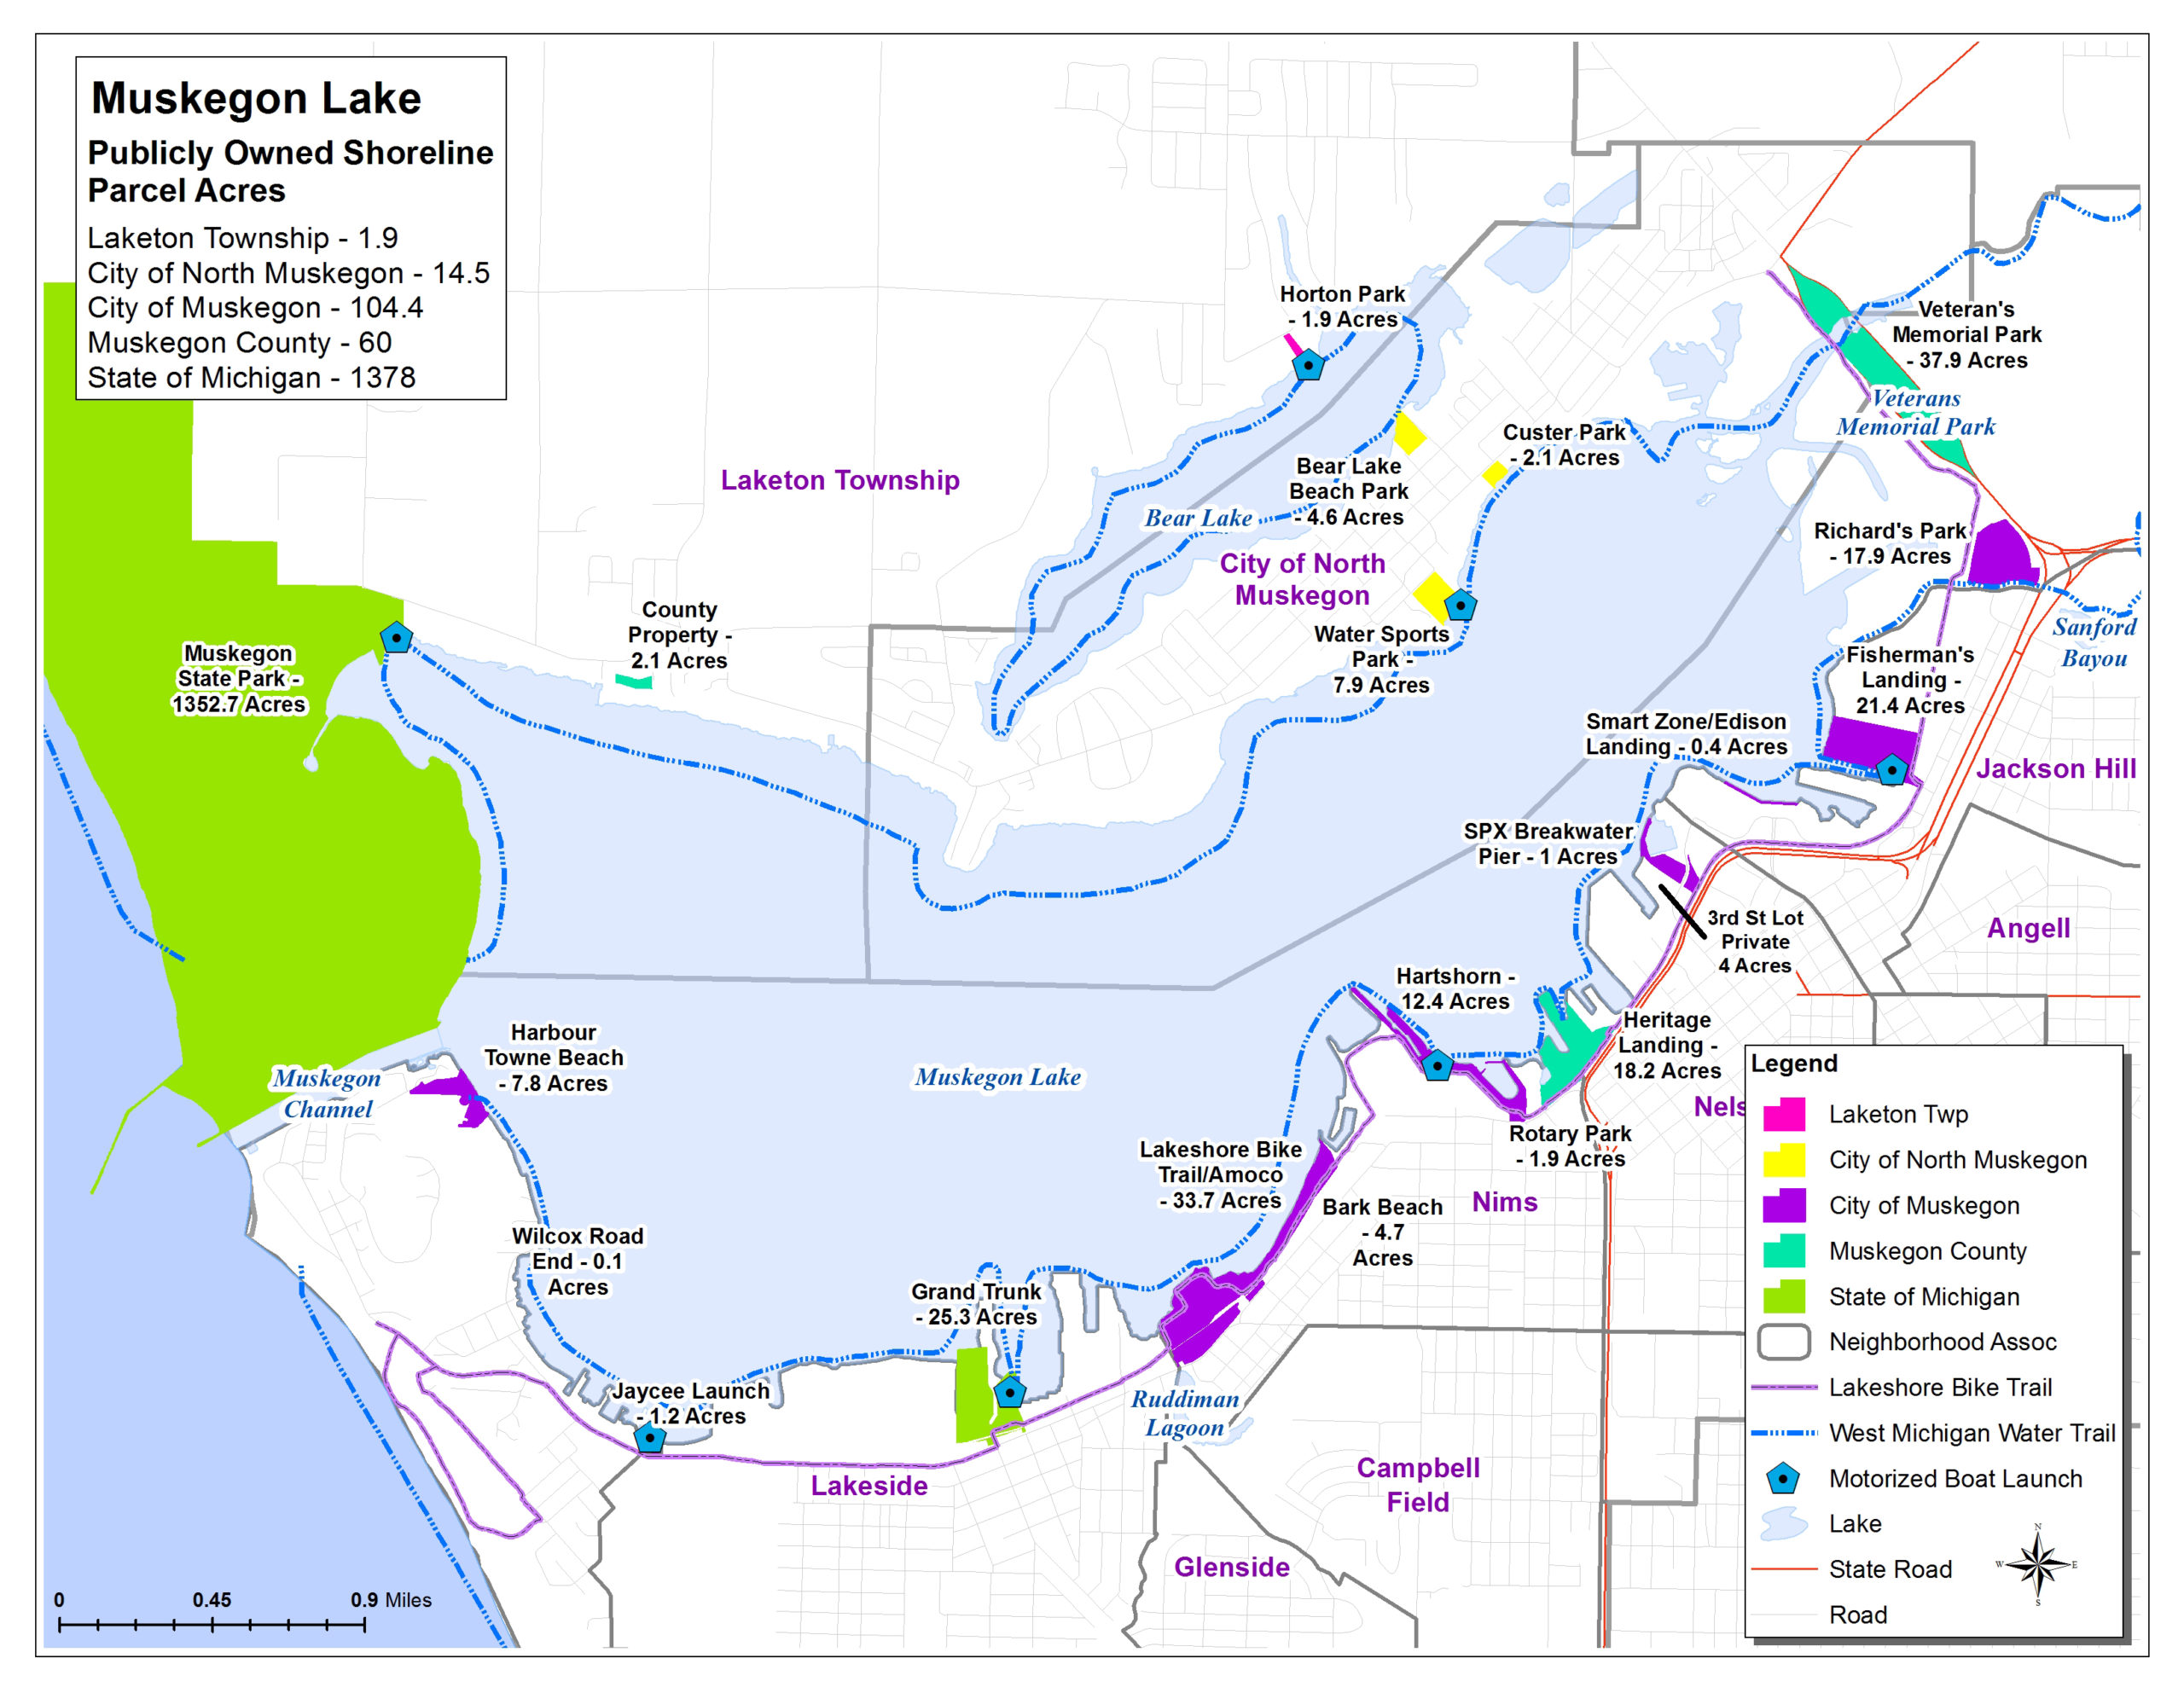 muskegon lake fishing map Hot Topics Muskegon Lake Watershed Partnership muskegon lake fishing map